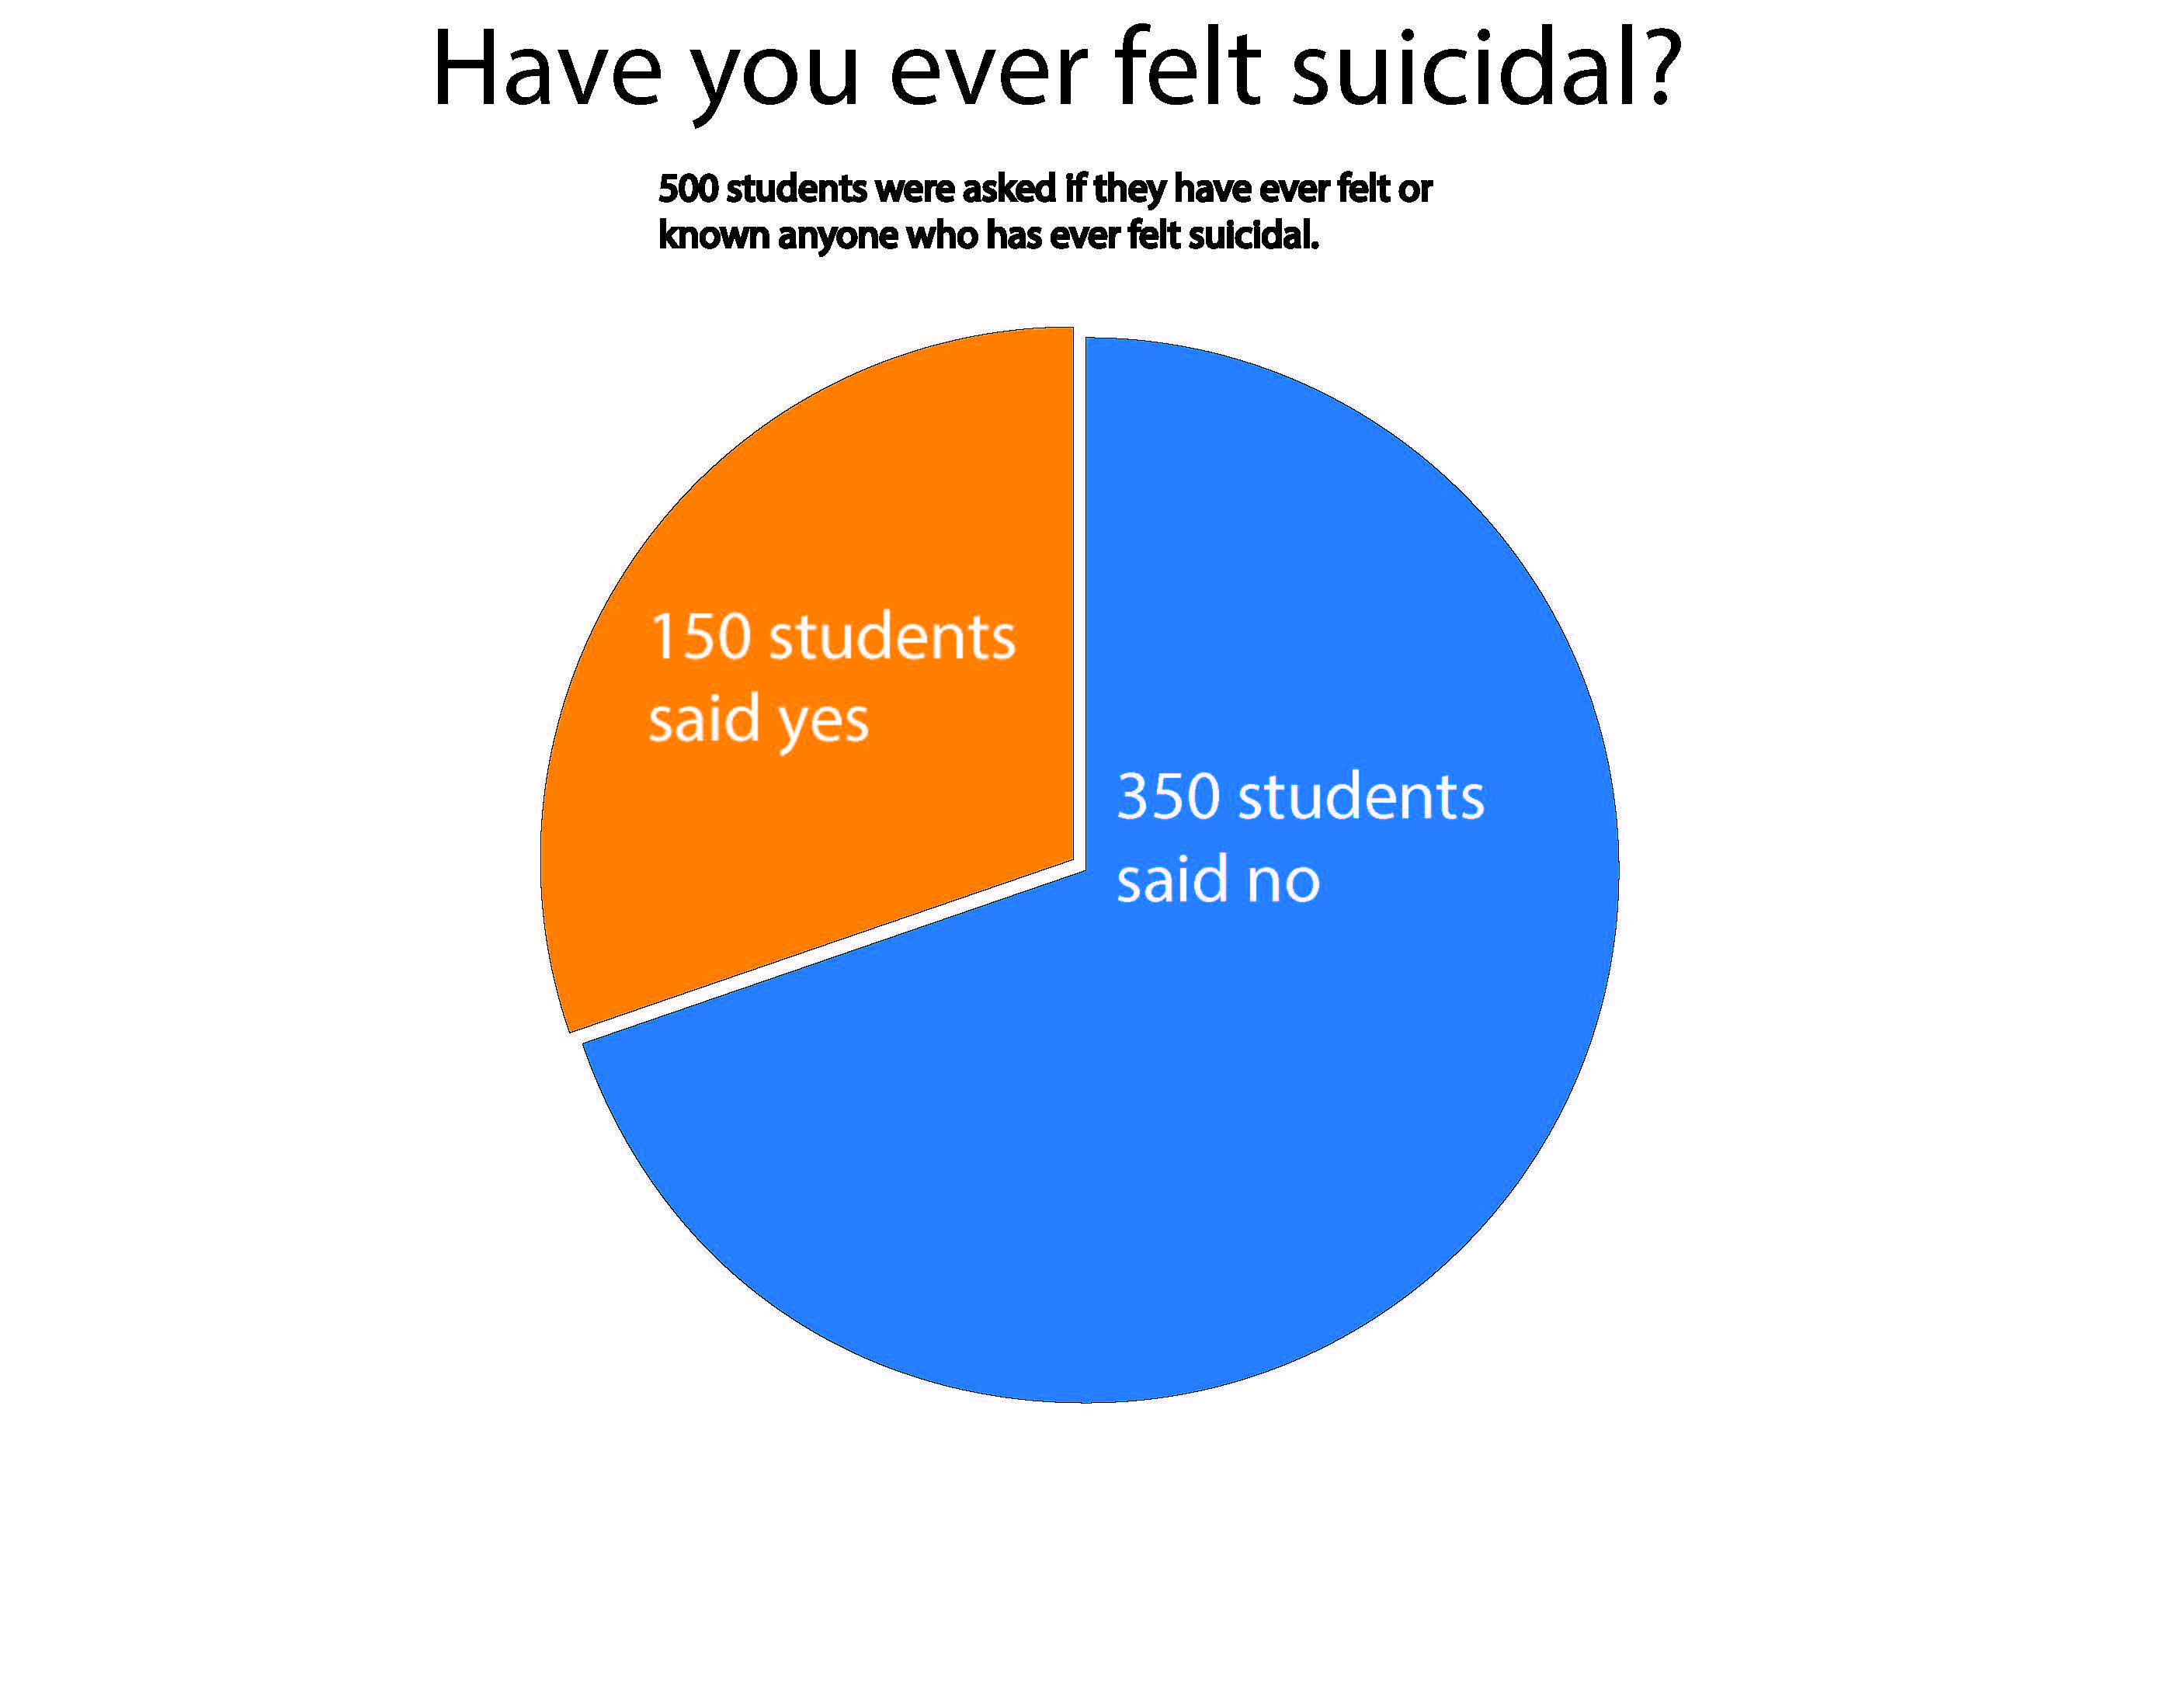 Suicide is now the second leading cause of death among college students